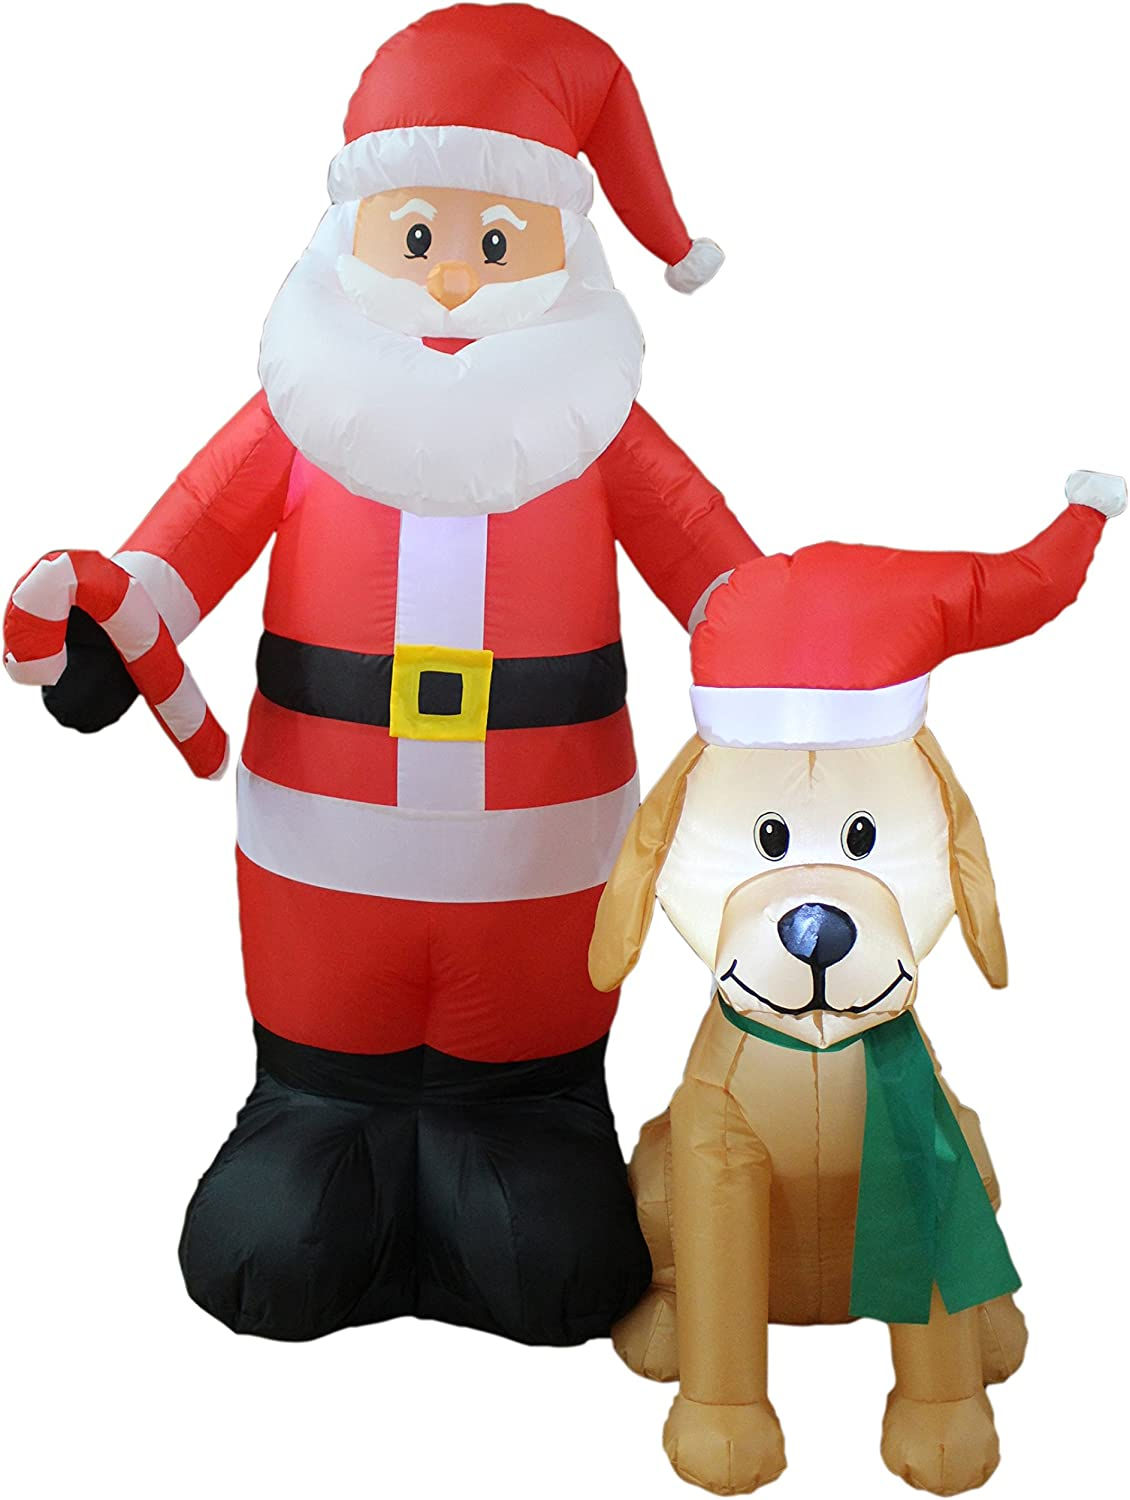 BZB Goods 5 Foot Tall Lighted Claus w Regular discount Christmas Some reservation Inflatable Santa